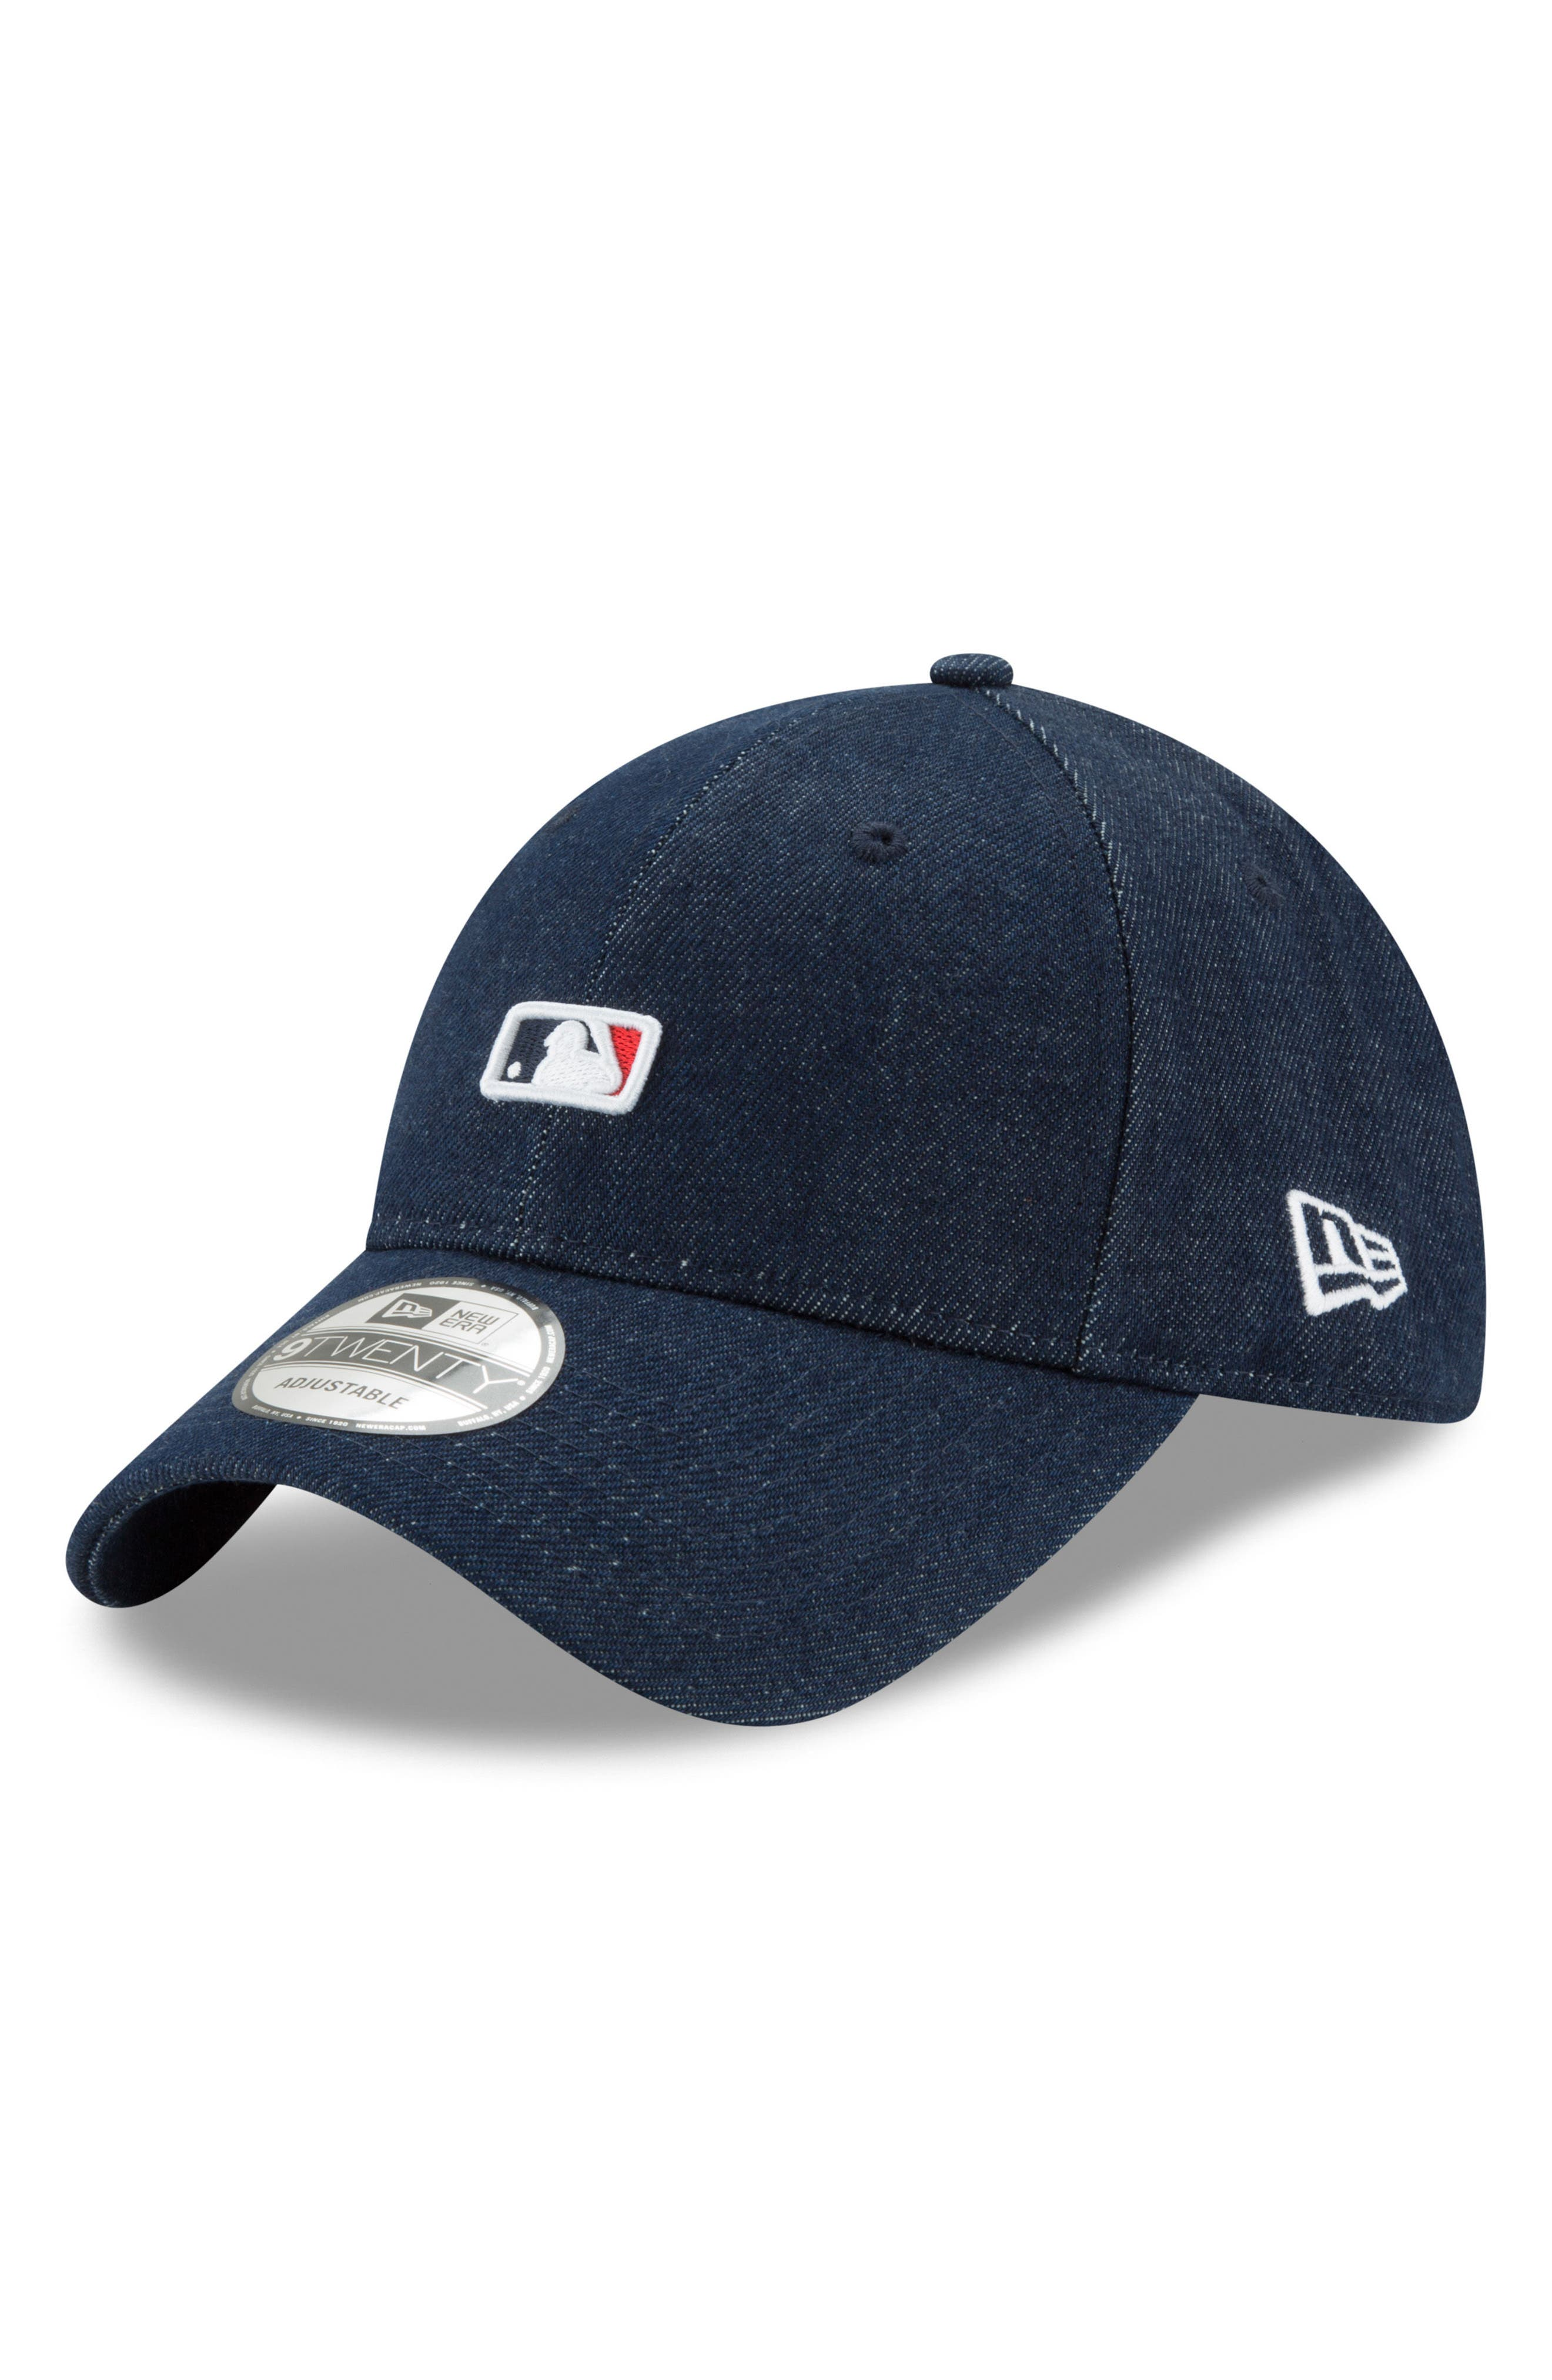 x Levi's<sup>®</sup> MLB Micro Batterman Baseball Cap,                         Main,                         color, BLACK